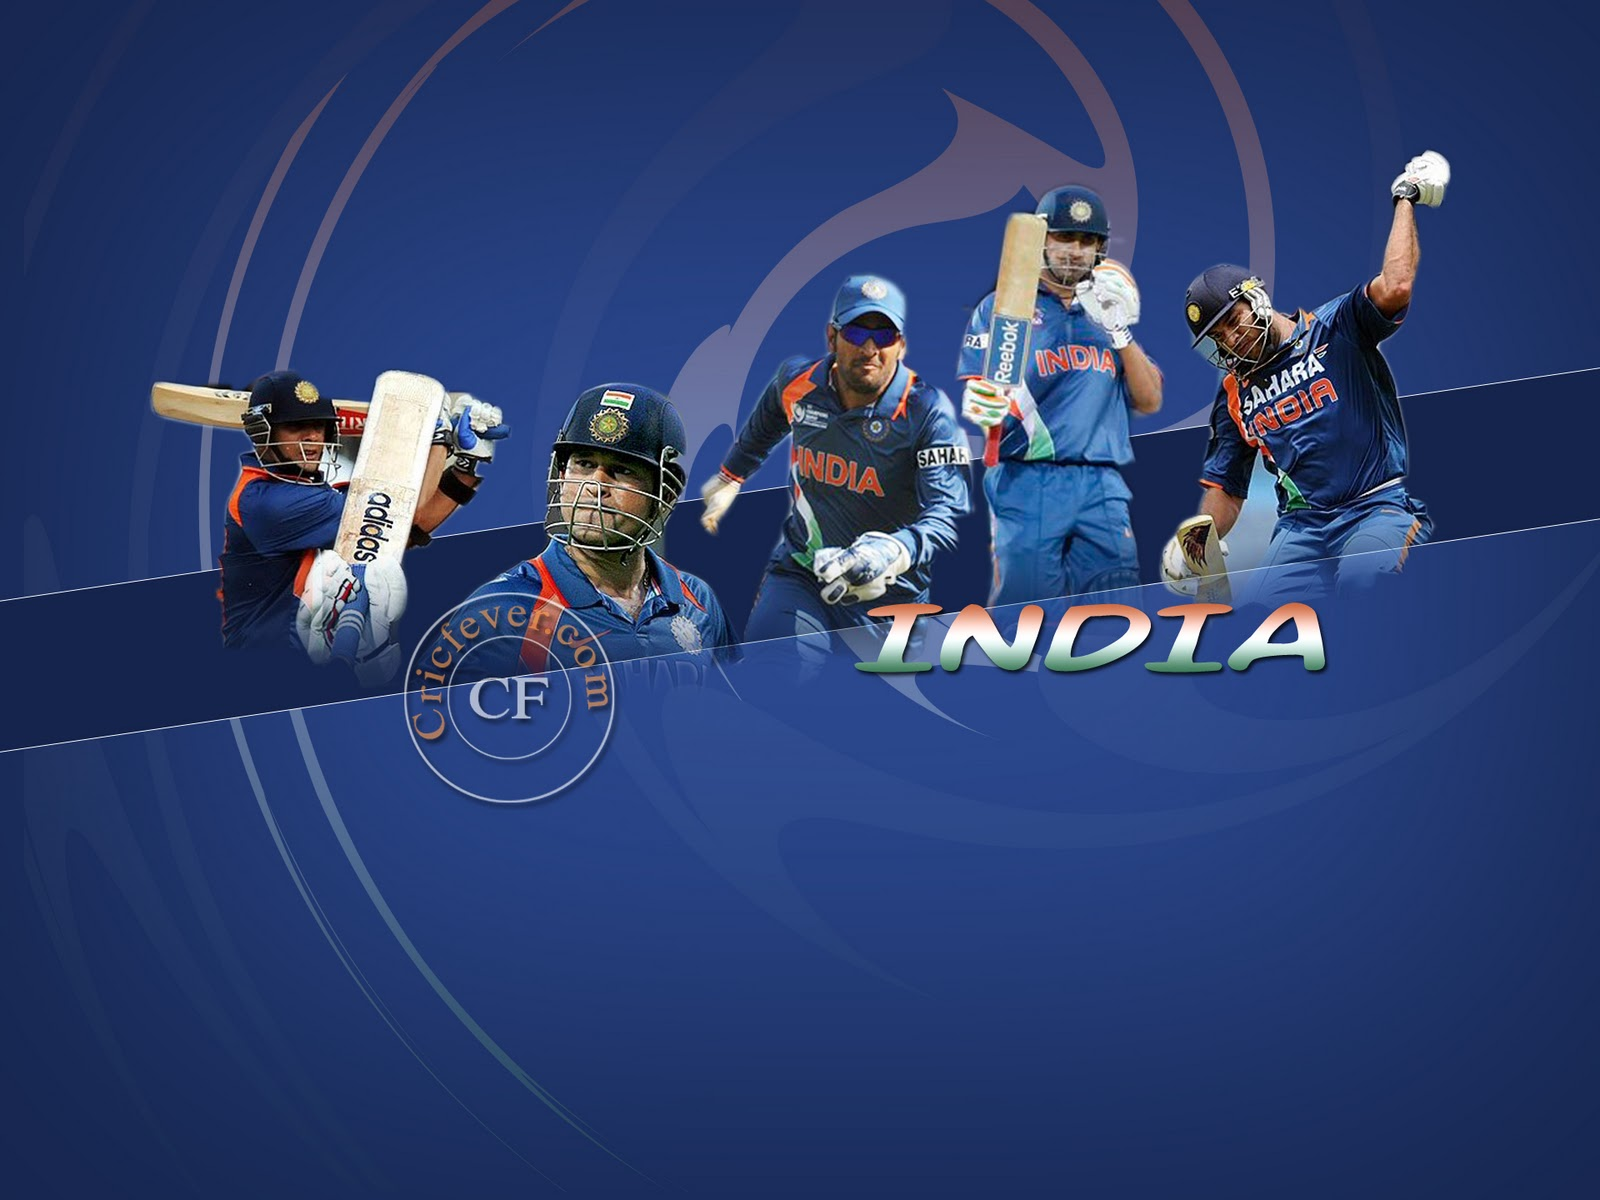 http://2.bp.blogspot.com/-vIerda-D-9I/TZDLkXglFsI/AAAAAAAABro/r1jyKVq-1mA/s1600/Team_India_for_icc_world_cup_wallpapers.jpg